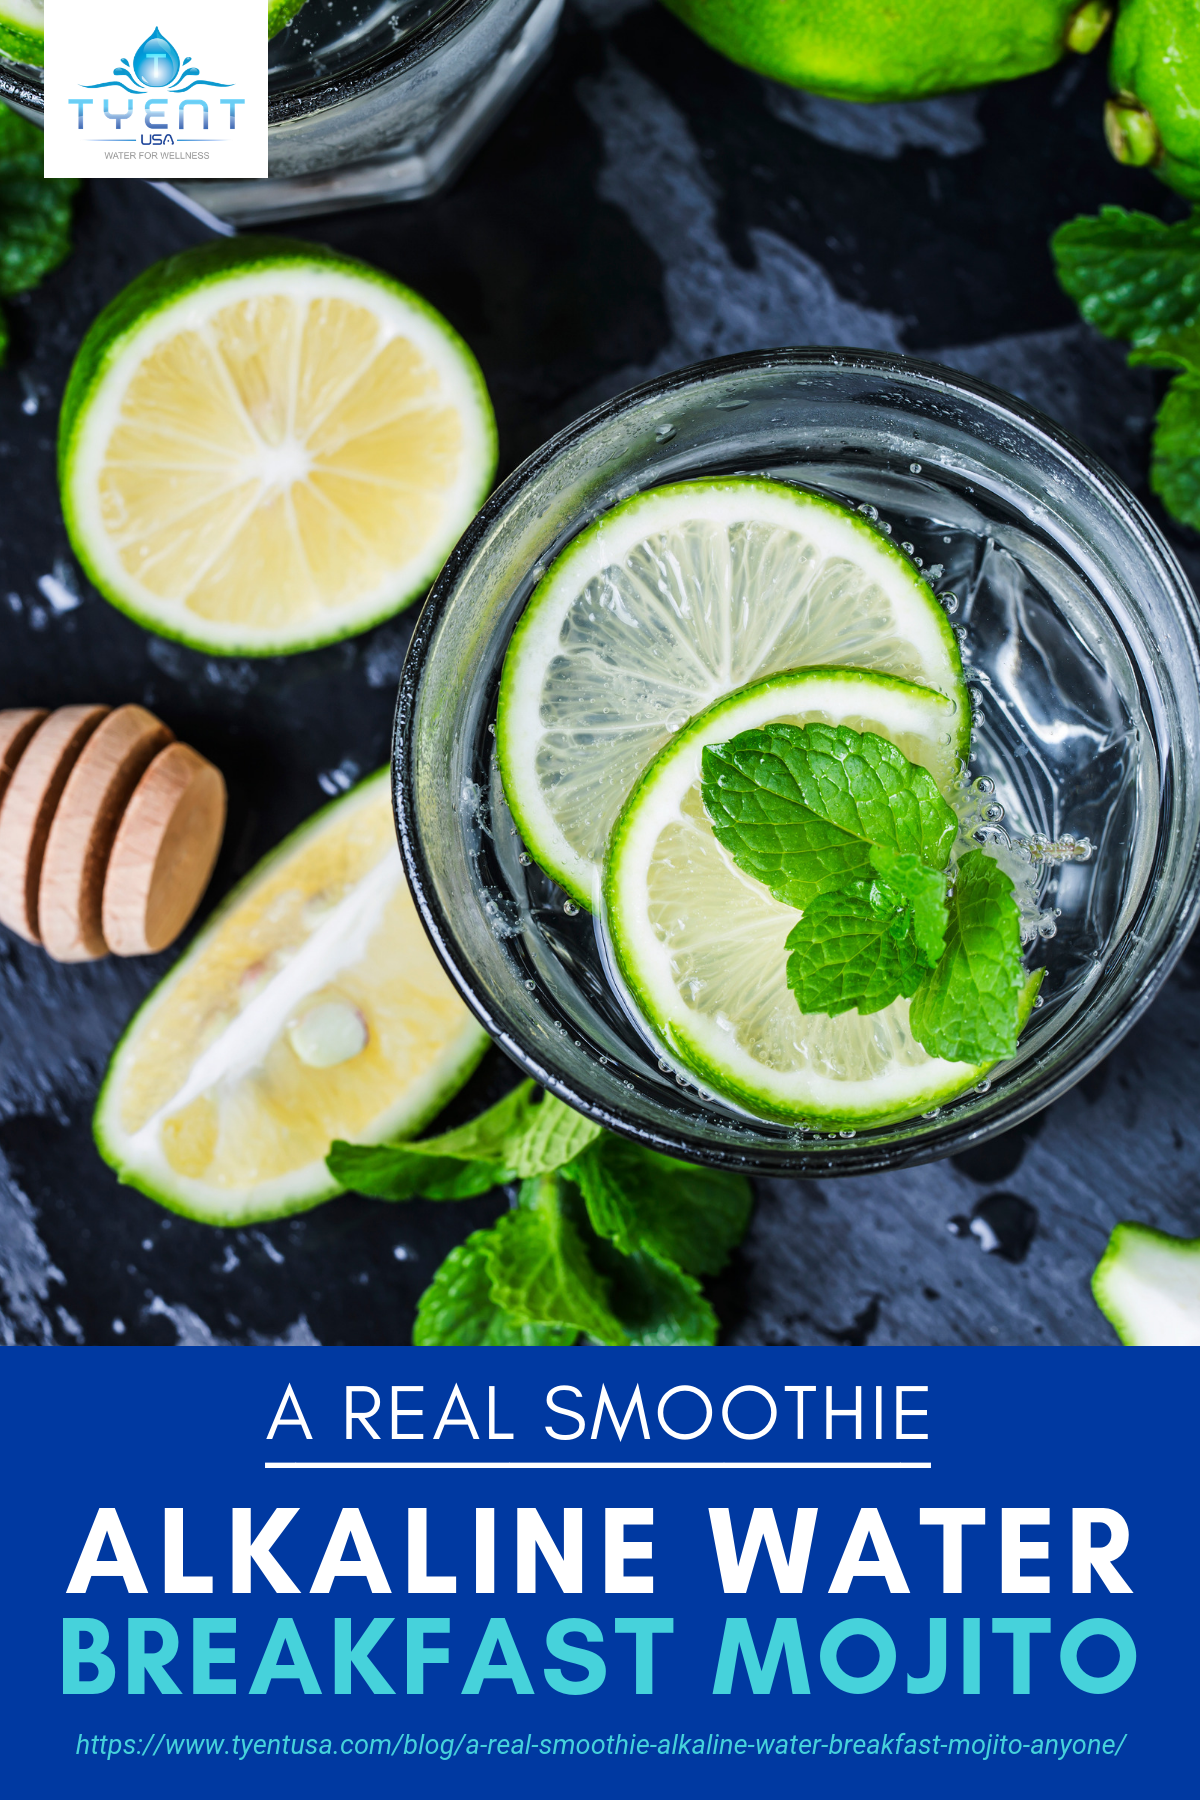 A Real Smoothie | Alkaline Water Breakfast Mojito, Anyone? https://www.tyentusa.com/blog/a-real-smoothie-alkaline-water-breakfast-mojito-anyone/